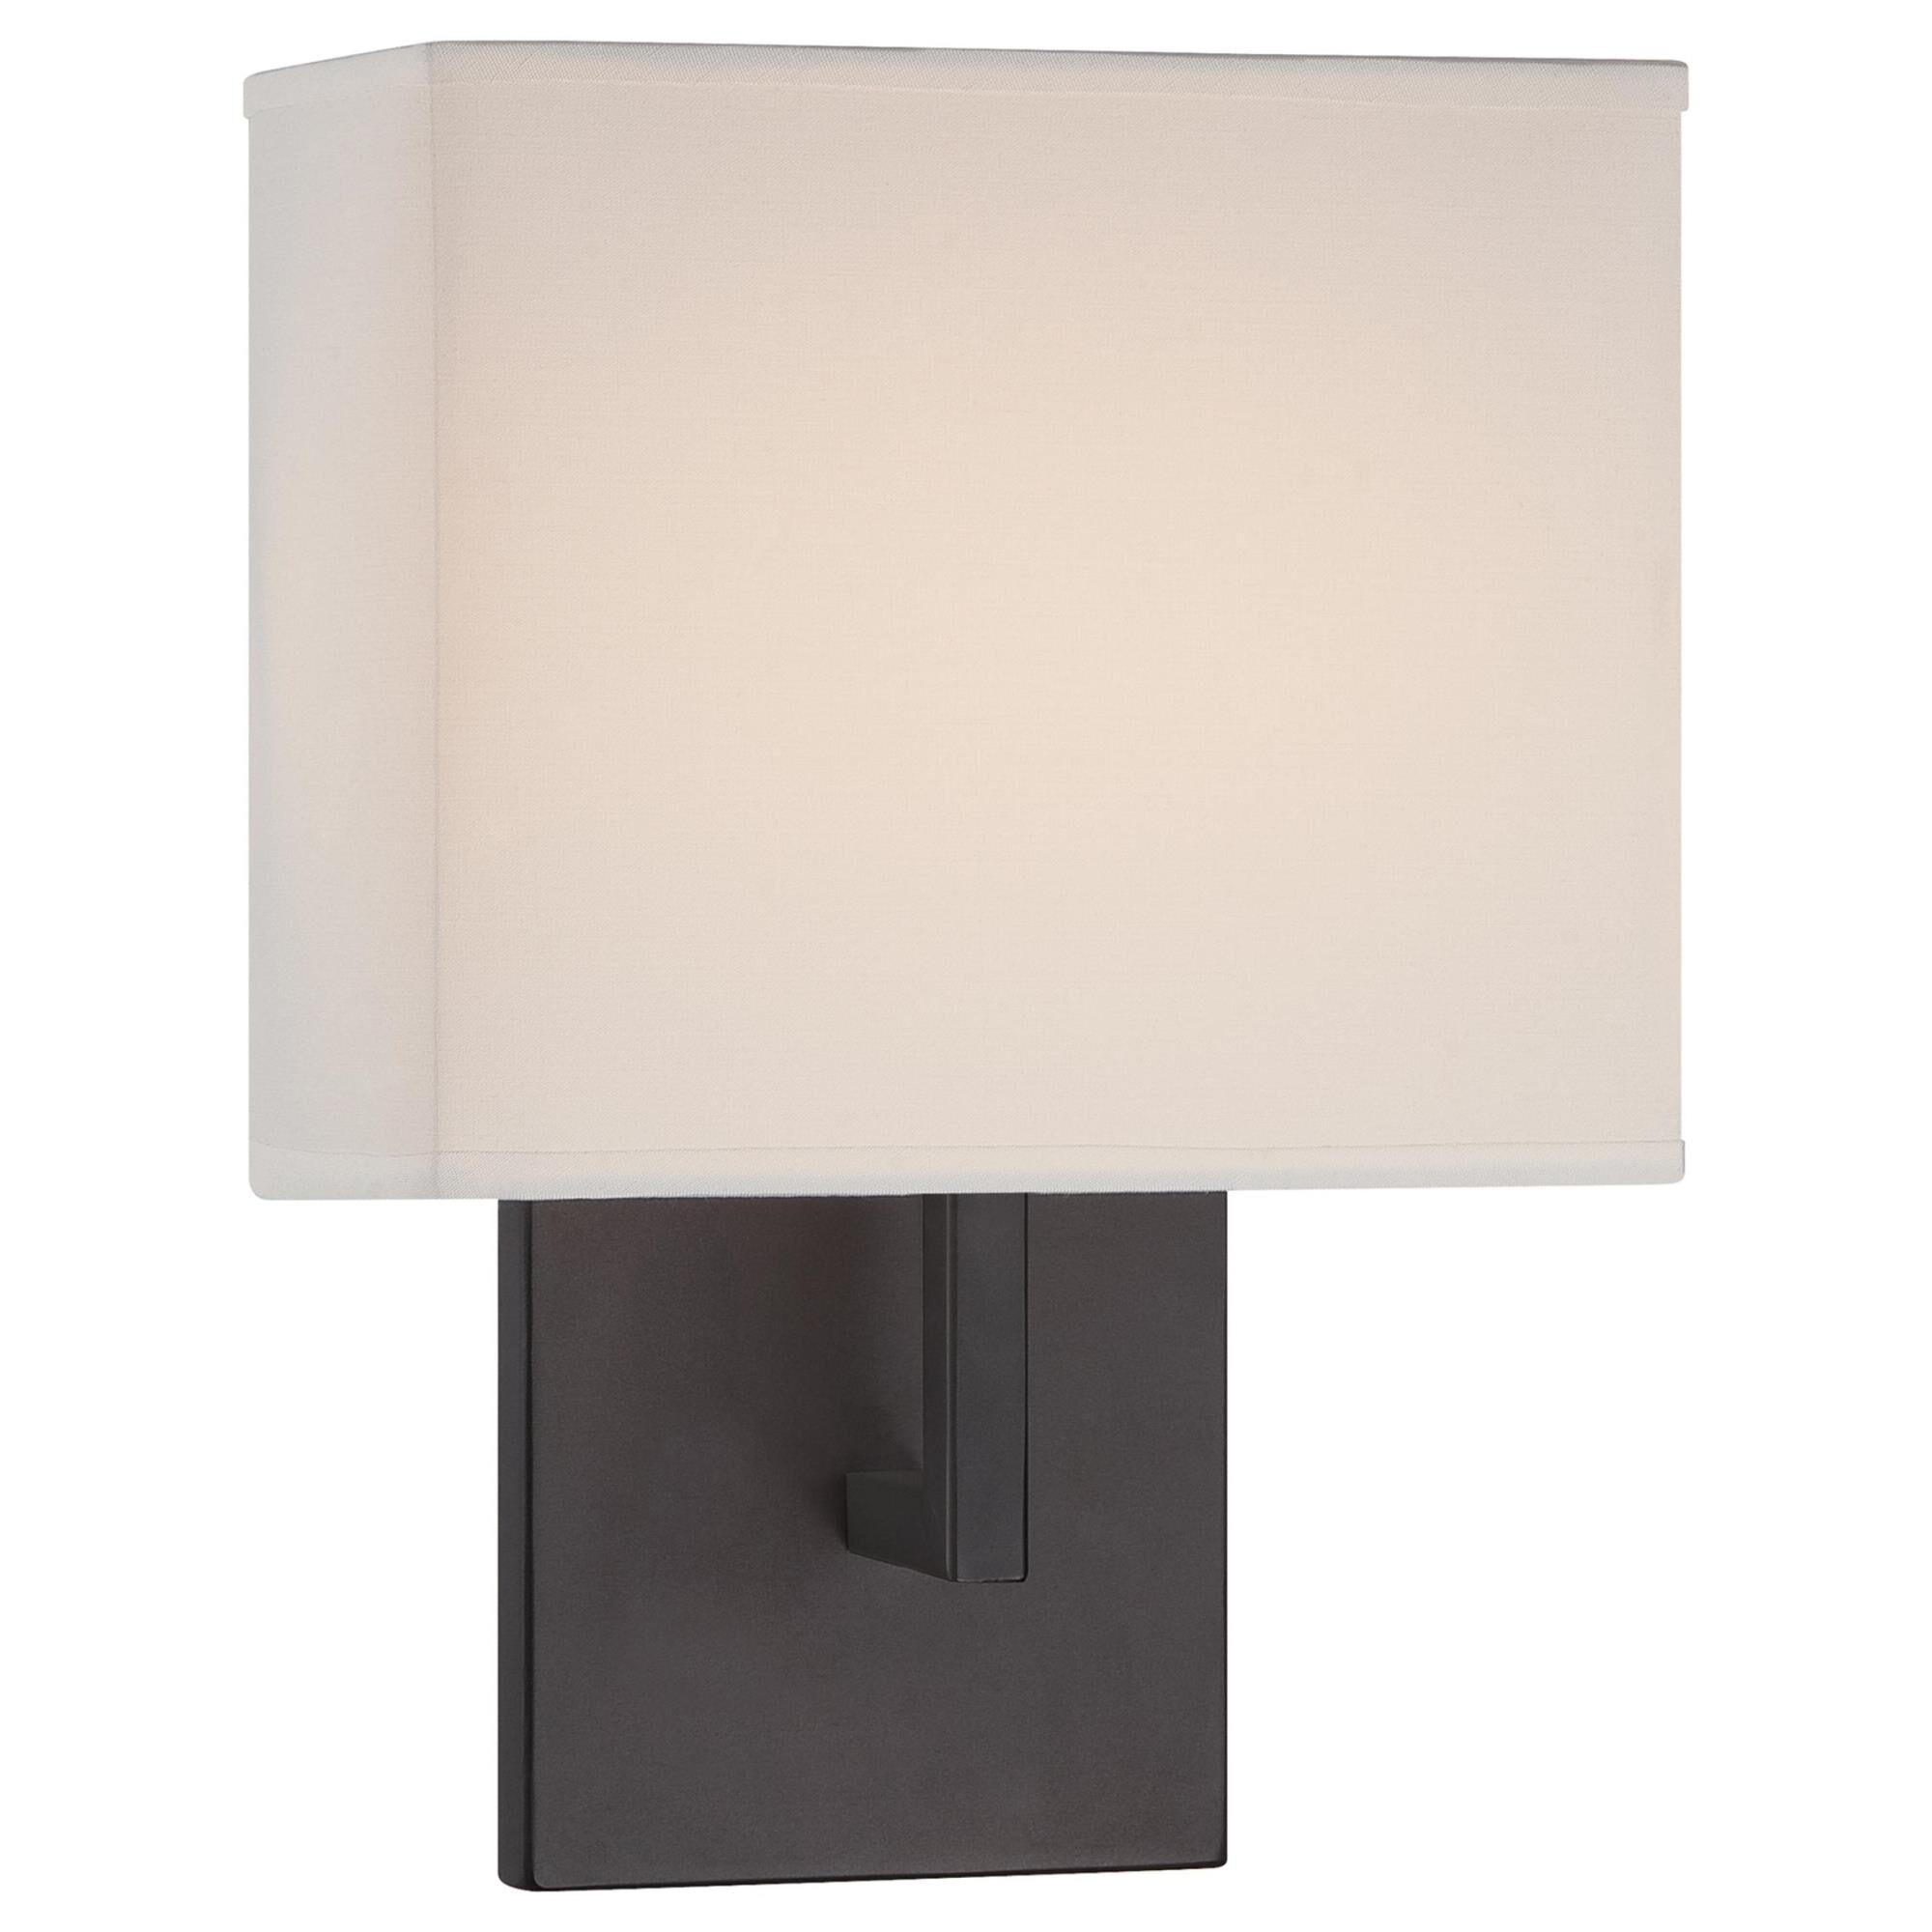 Kovacs 11 Inch Wall Sconce - P470-617-l - Transitional